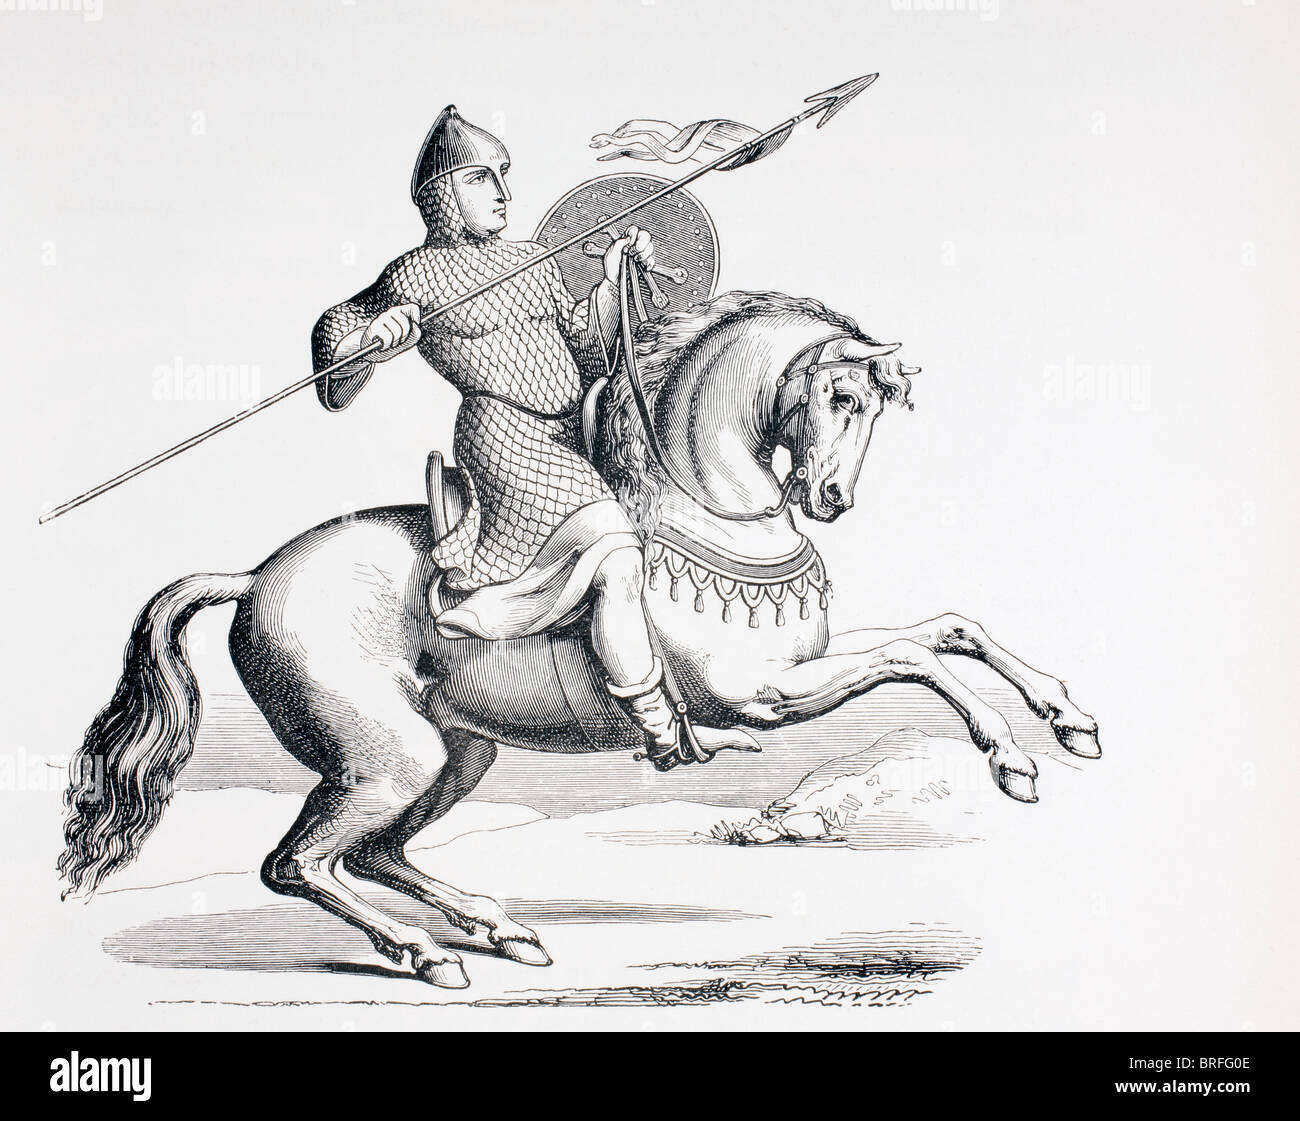 A Norman knight dressed in chain mail and helmet carrying spear and shield. - Stock Image